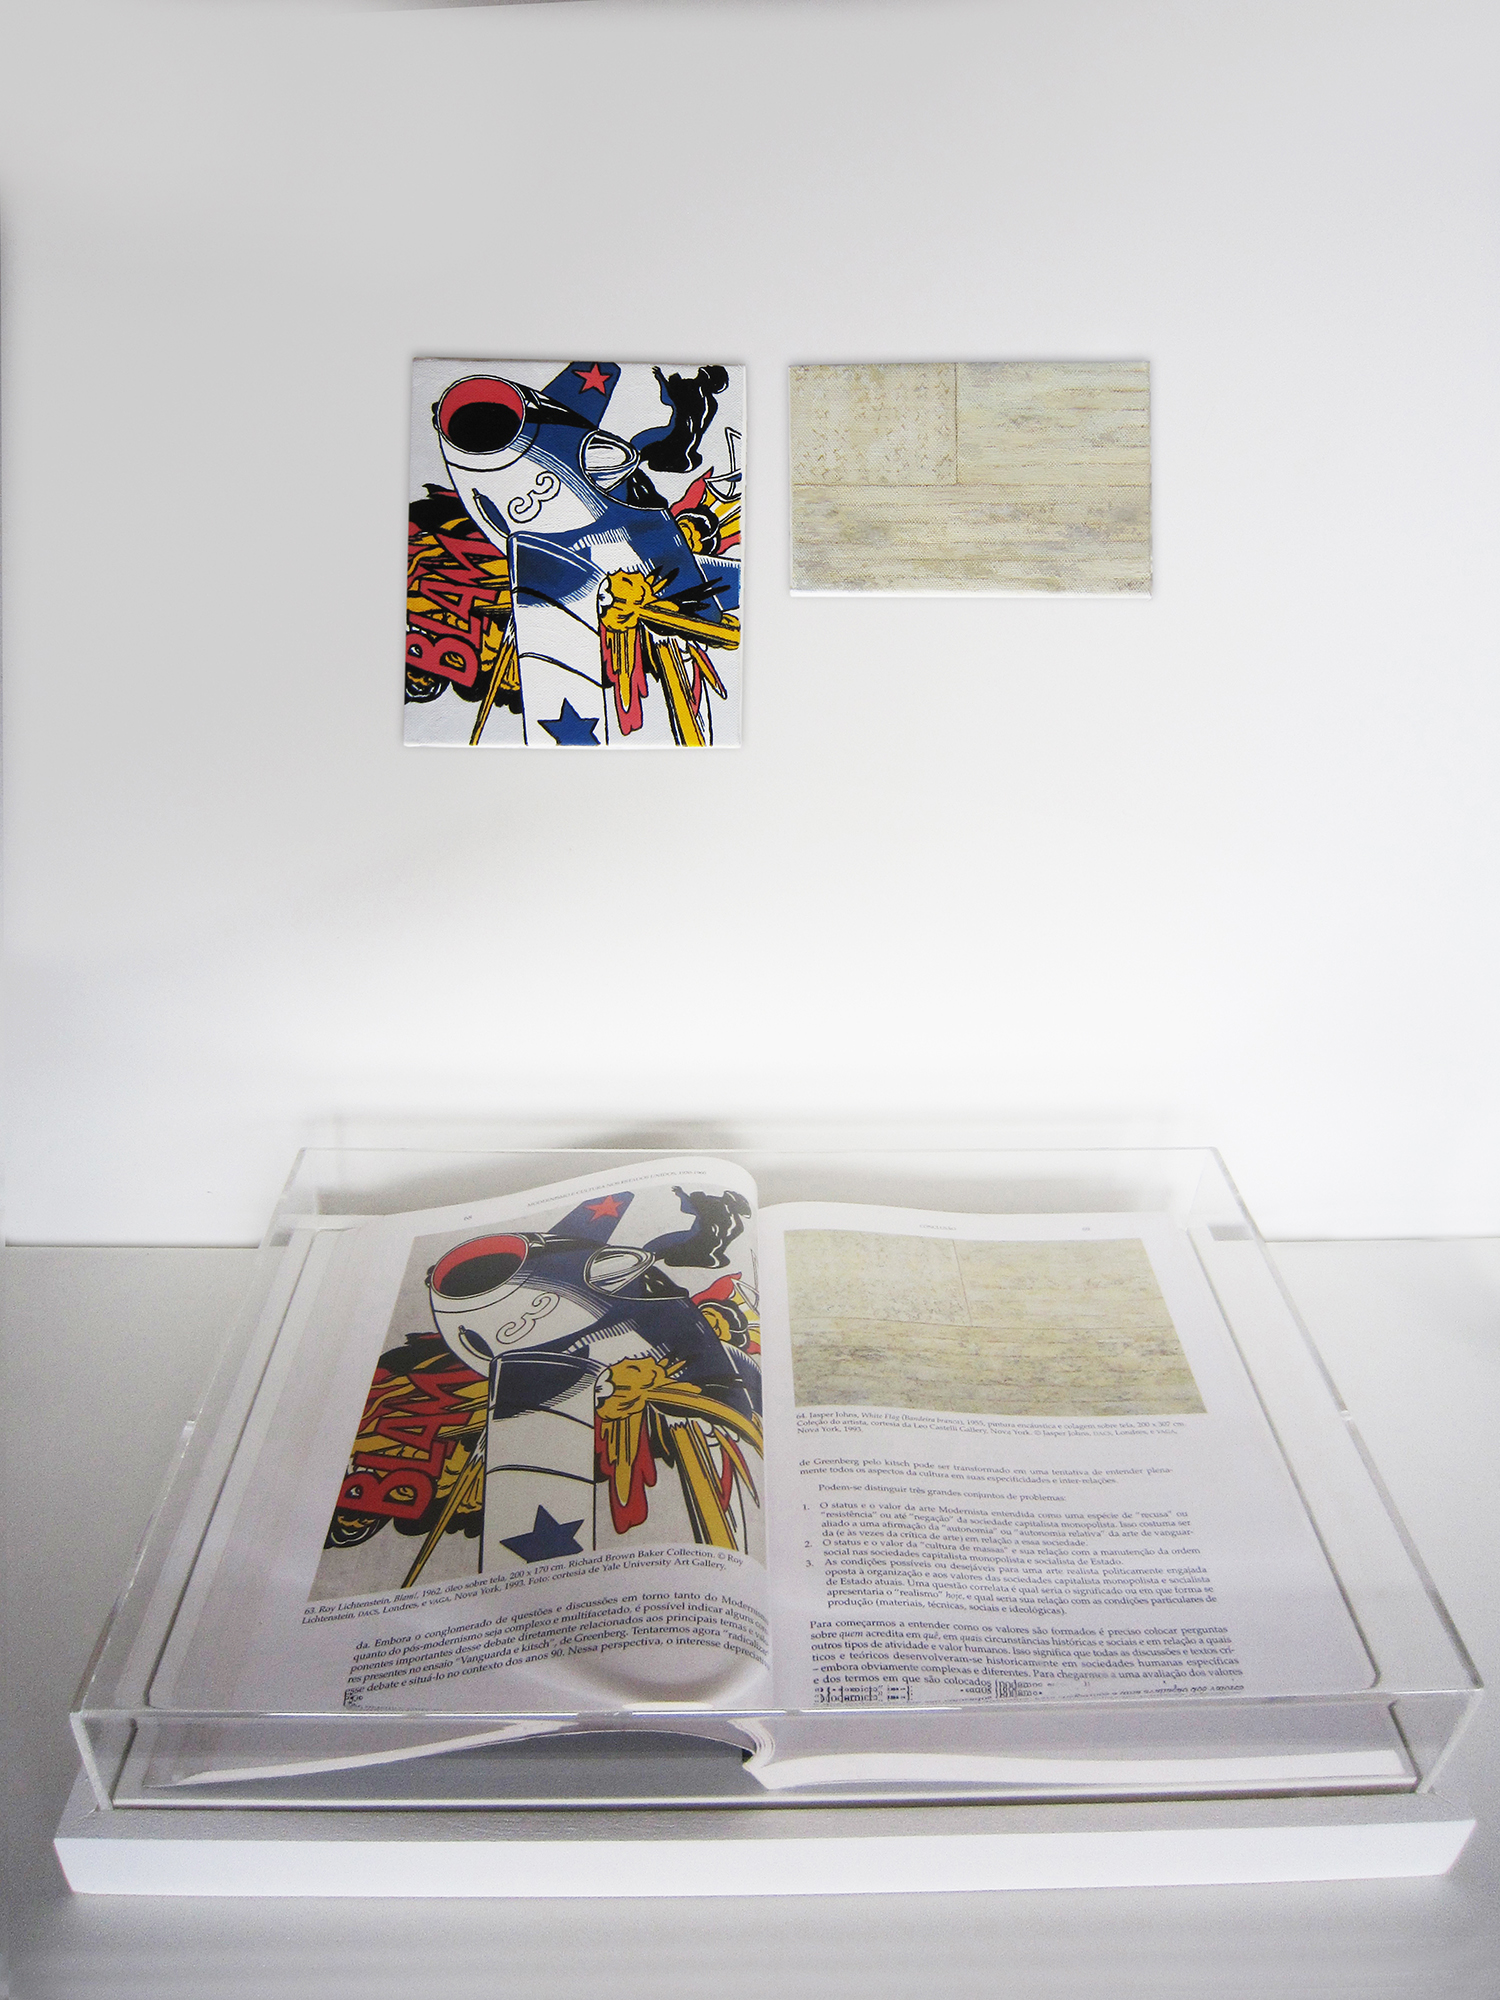 Pages 68 and 69 (That's How I Was Taught series  ) •2012 • Framed book, oil on canvas • 11.25 x 16.4 in (book), 7.3 x 6.2 in, 4 x 6.3 in